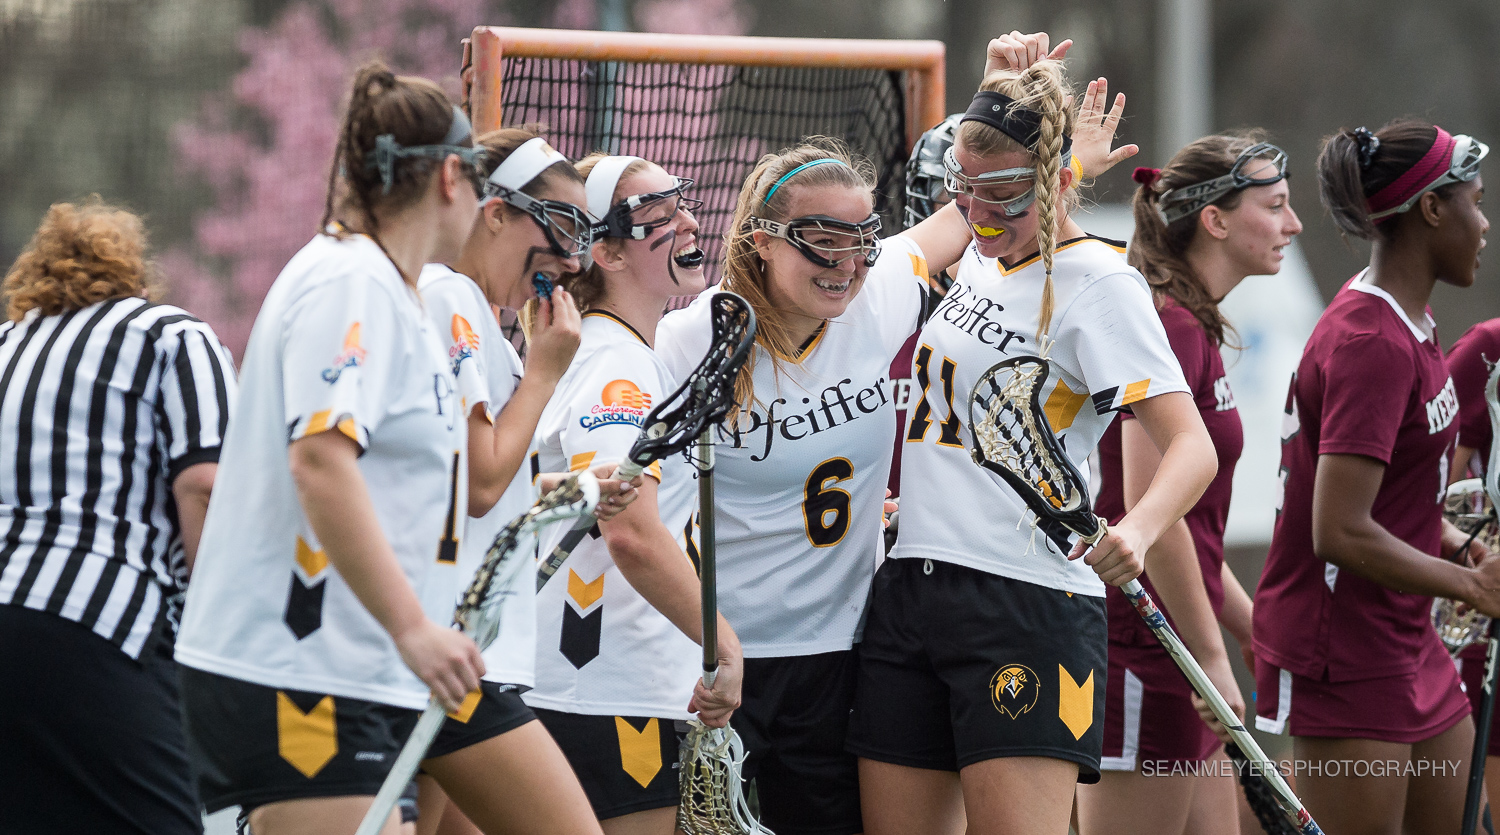 Women's Lacrosse Extends Winning Streak to Eight in Road Victory at N.C. Wesleyan